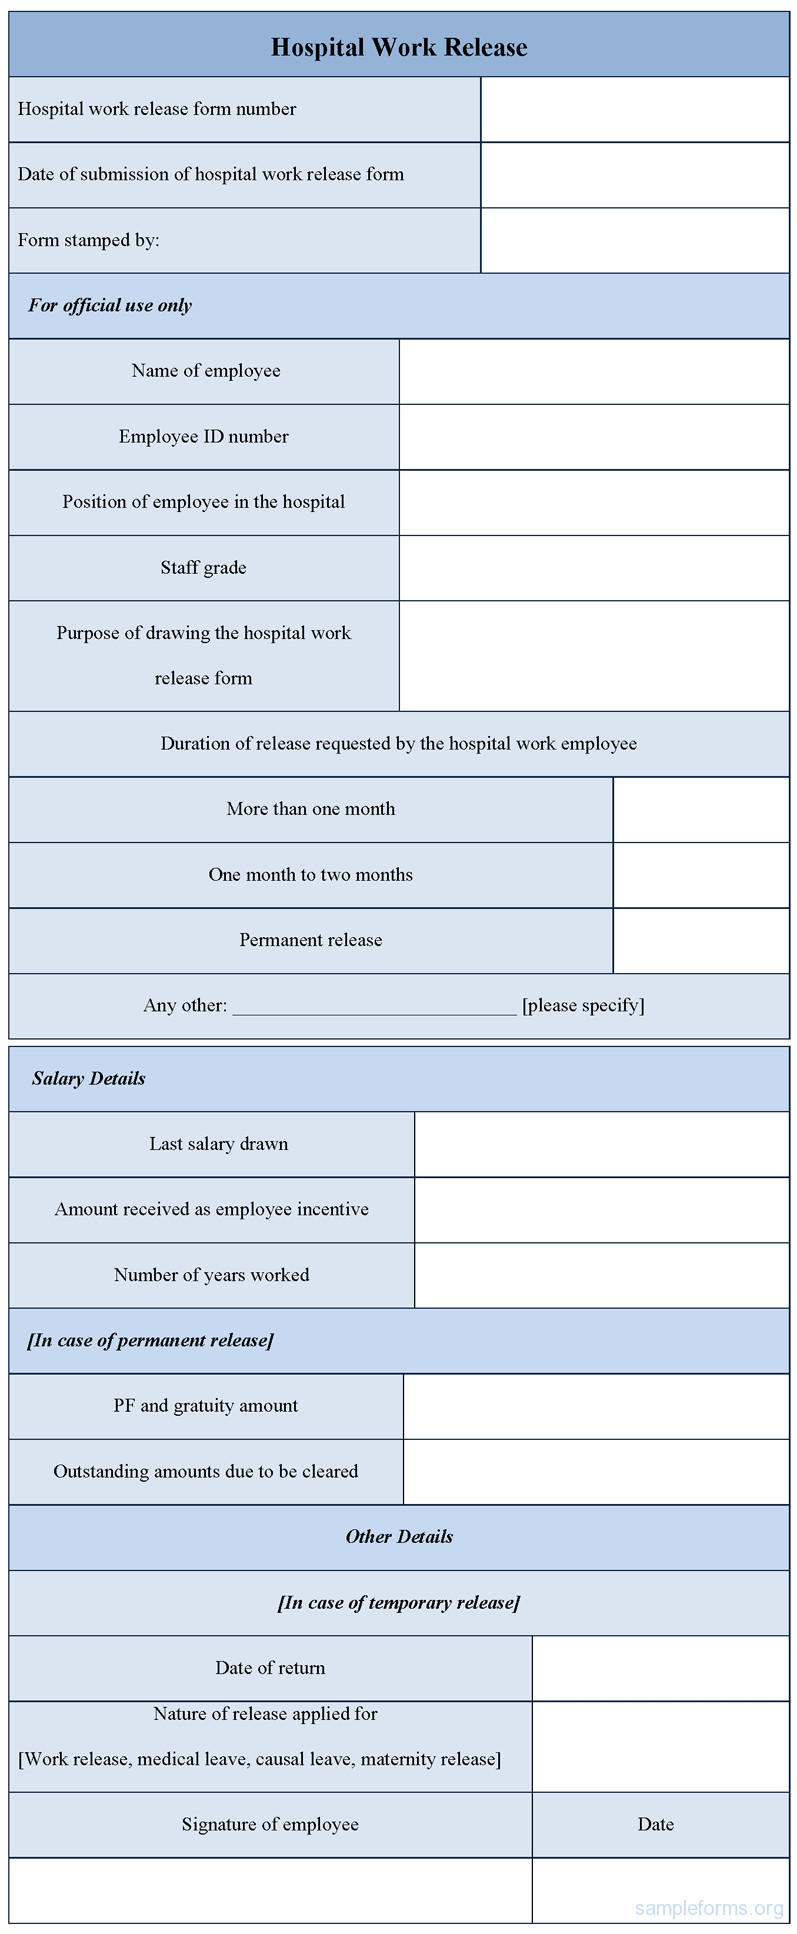 Hospital Release form Template Hospital Work Release form Sample forms